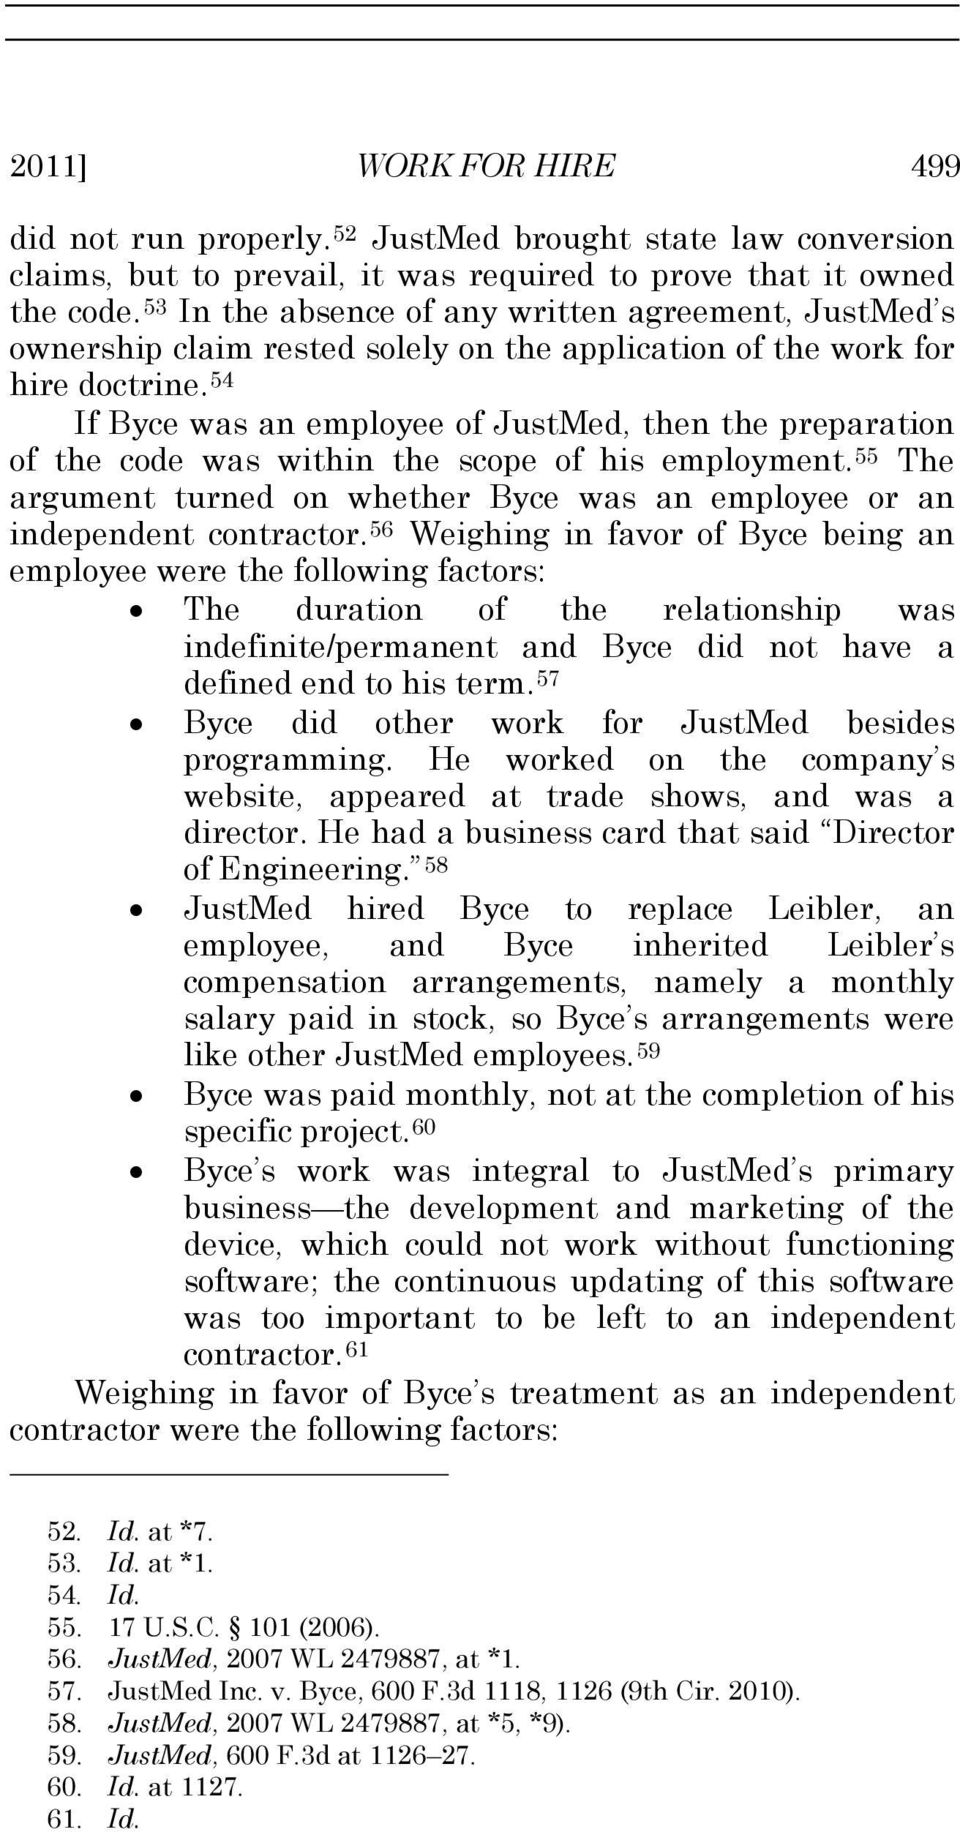 54 If Byce was an employee of JustMed, then the preparation of the code was within the scope of his employment. 55 The argument turned on whether Byce was an employee or an independent contractor.